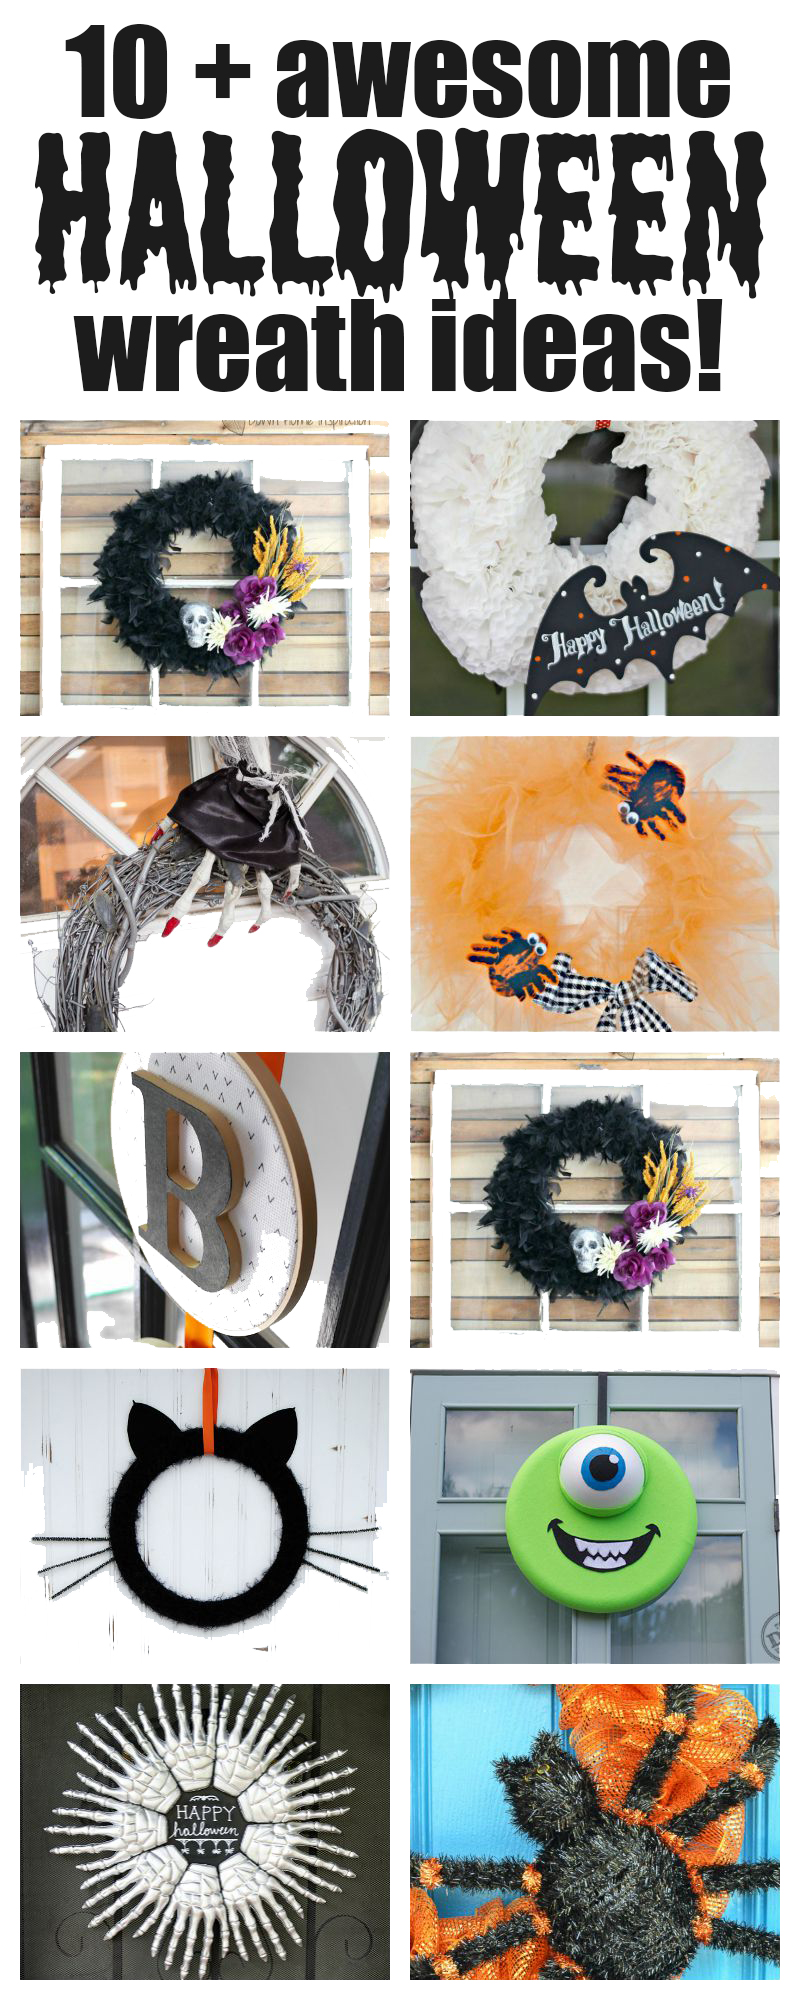 Over 10 awesome halloween wreaths to get you in the mood for the upcoming scare fest! Grab some liquid energy and get some great ideas for Halloween!